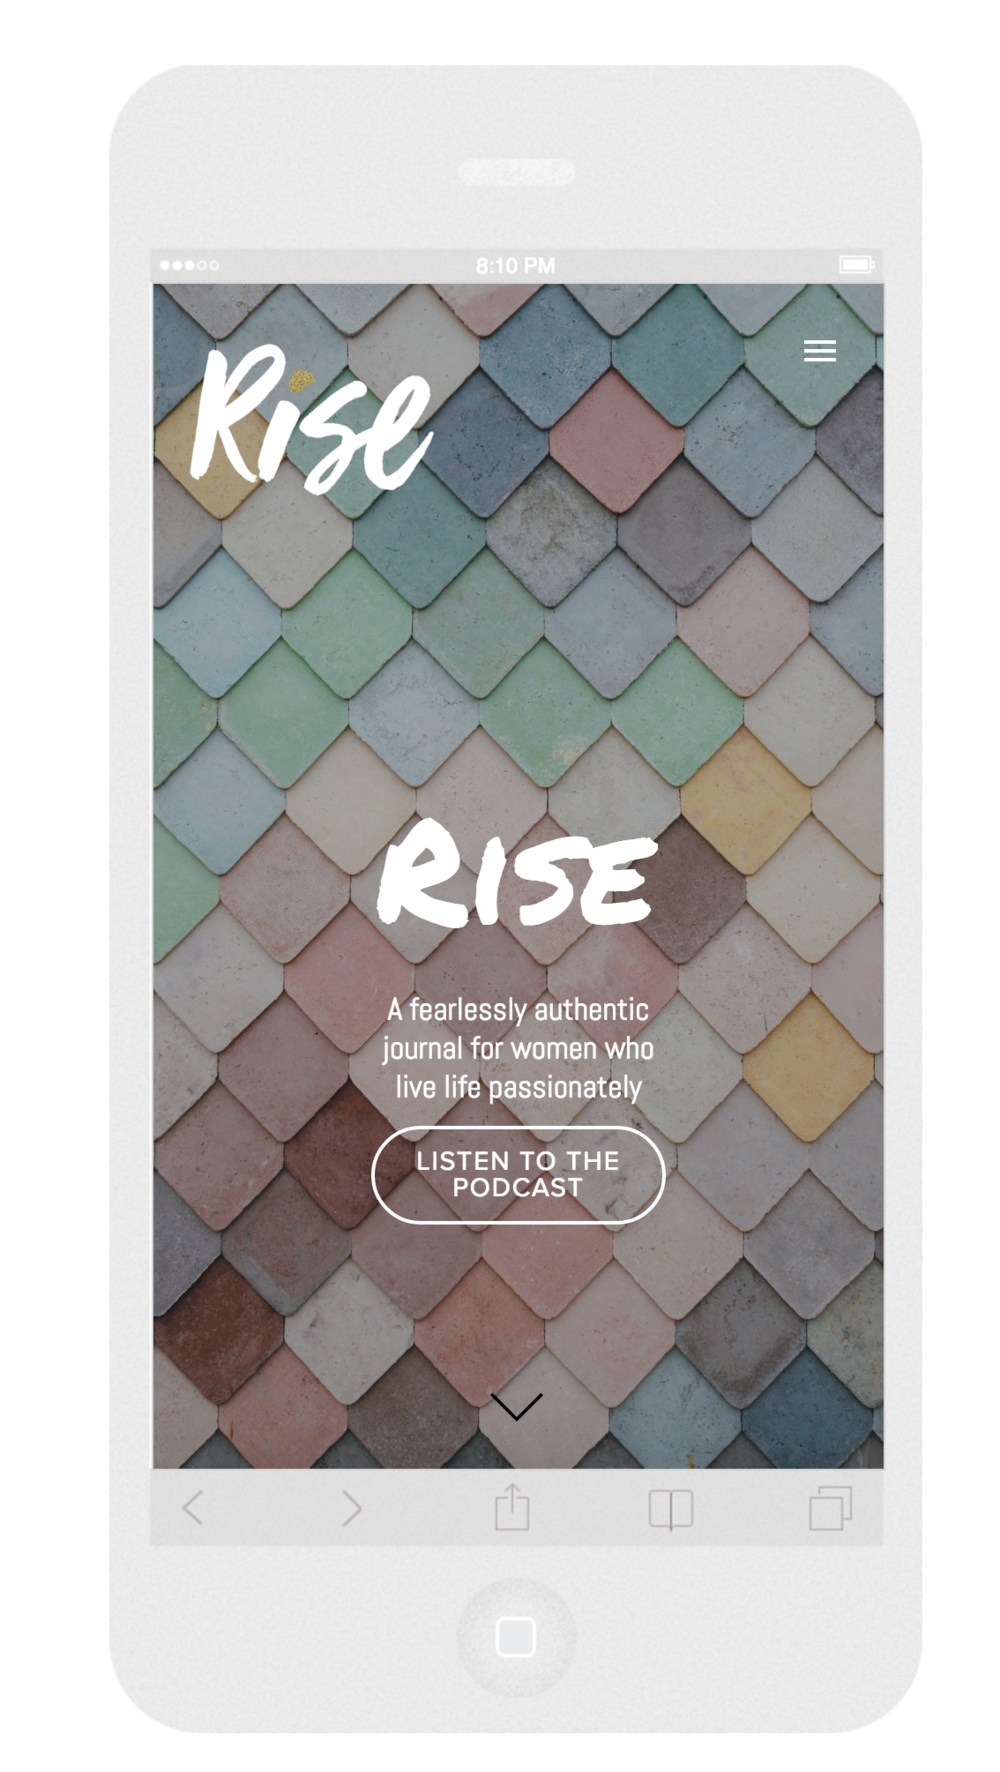 LIVE: RISE - A FEARLESS / AUTHENTIC JOURNAL AND PODCAST FOR WOMEN Website Design